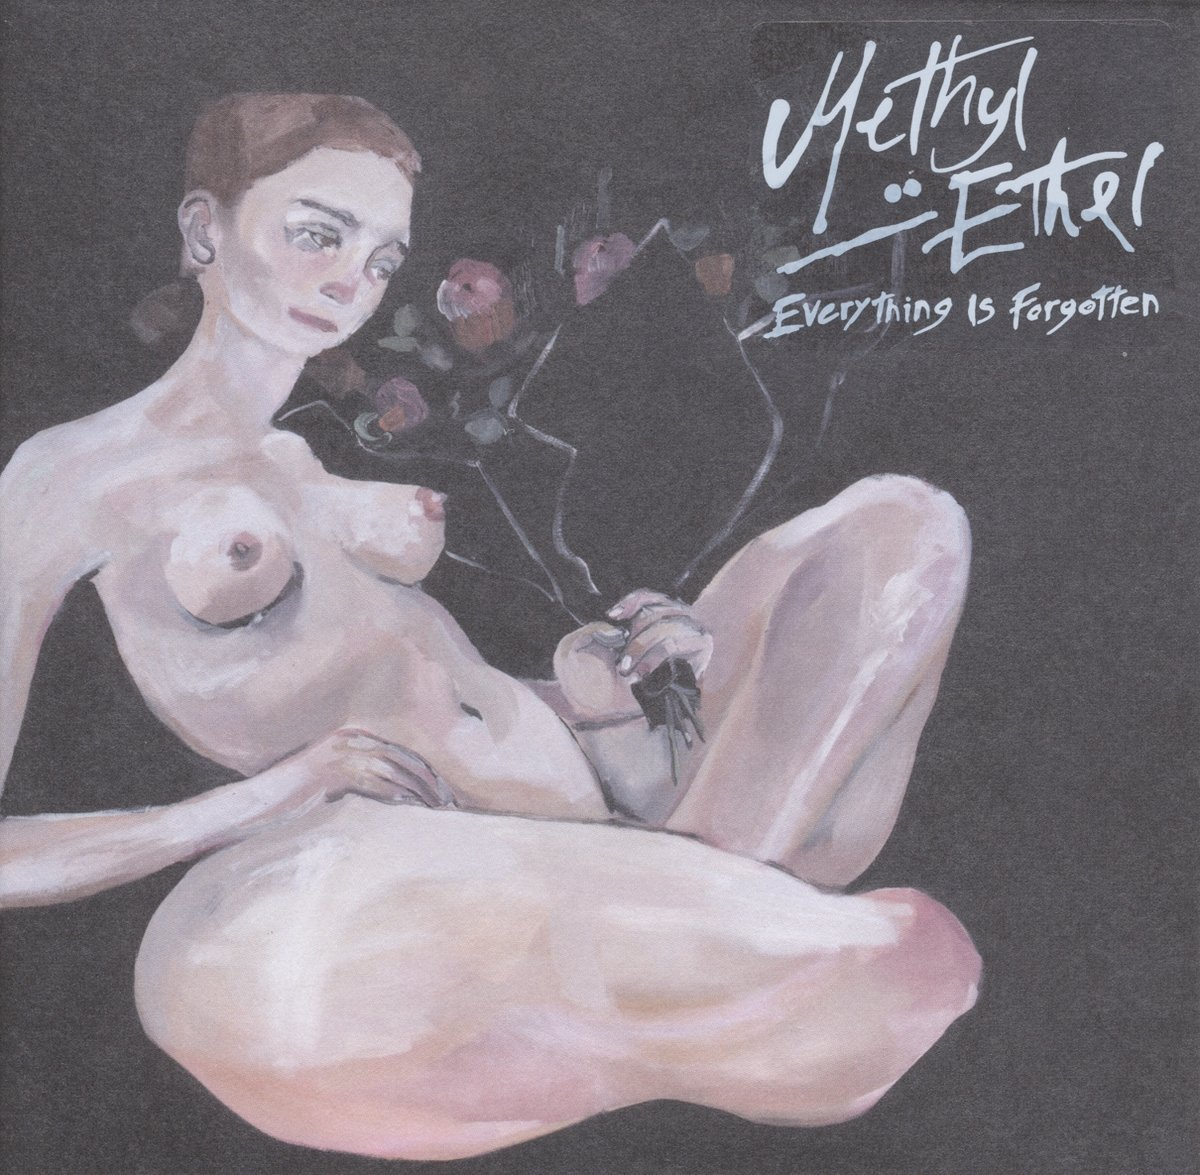 Methyl Ethel - Everything